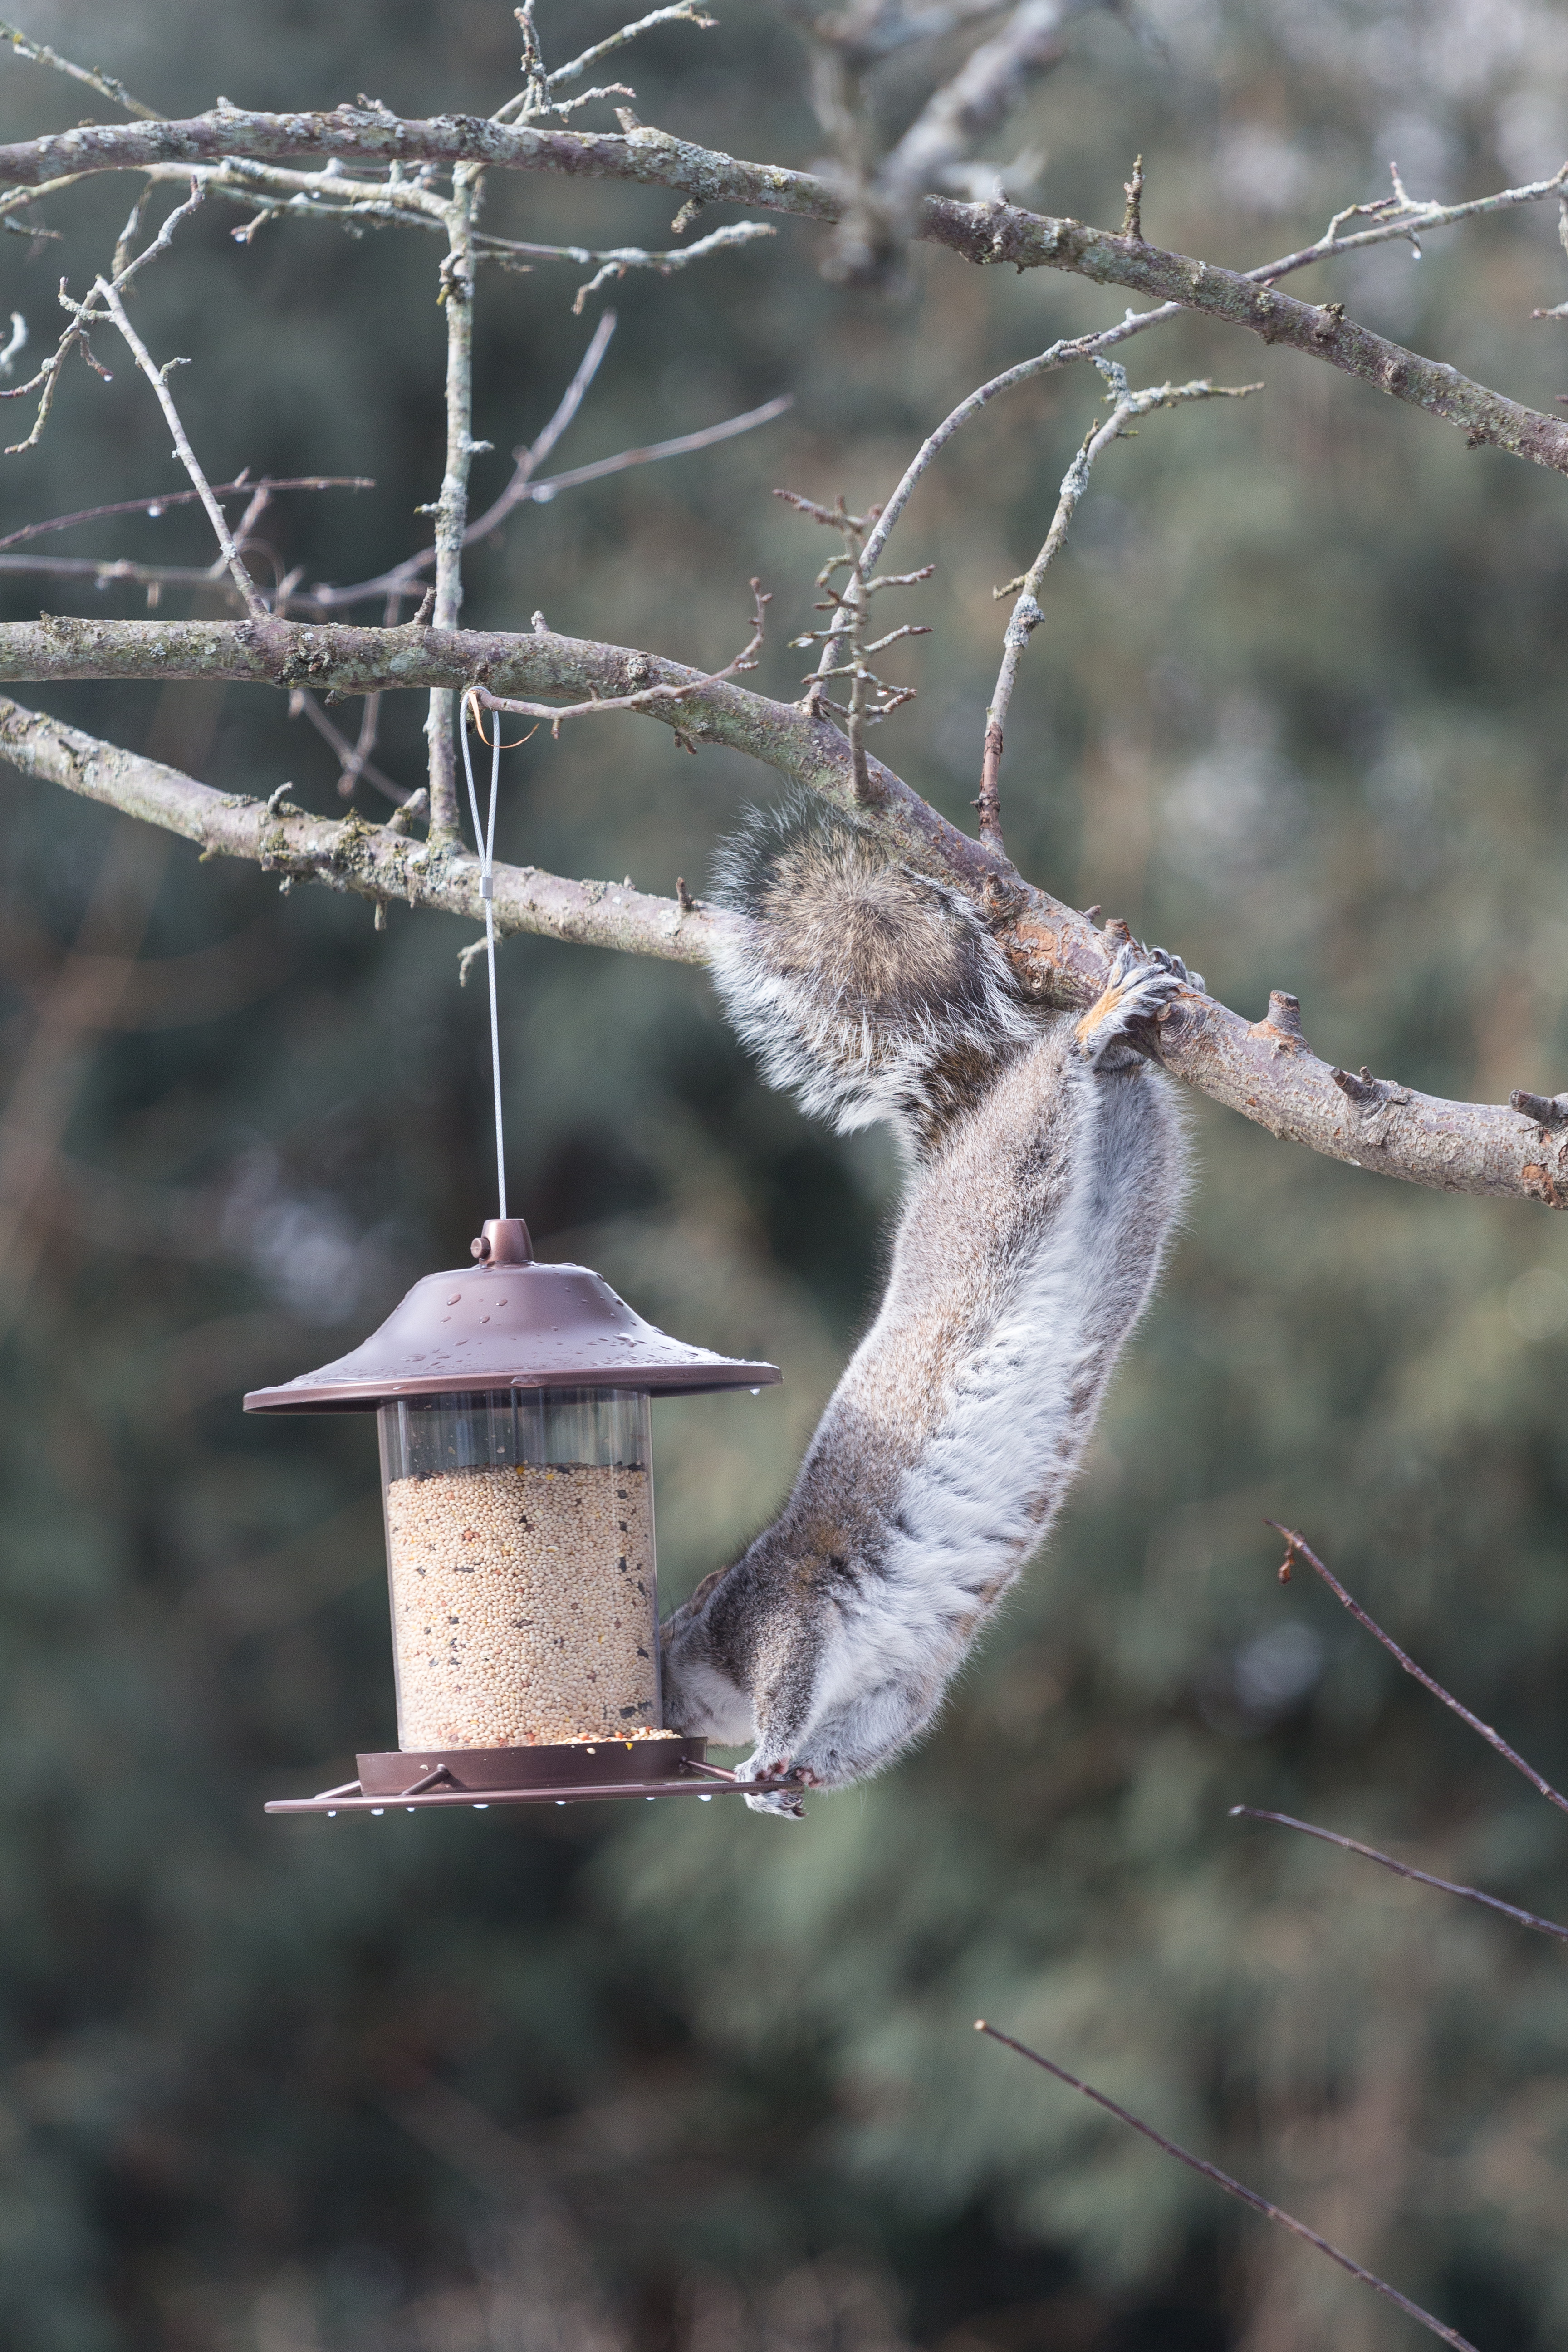 Squirrel at the Feeder | https://www.roseclearfield.com